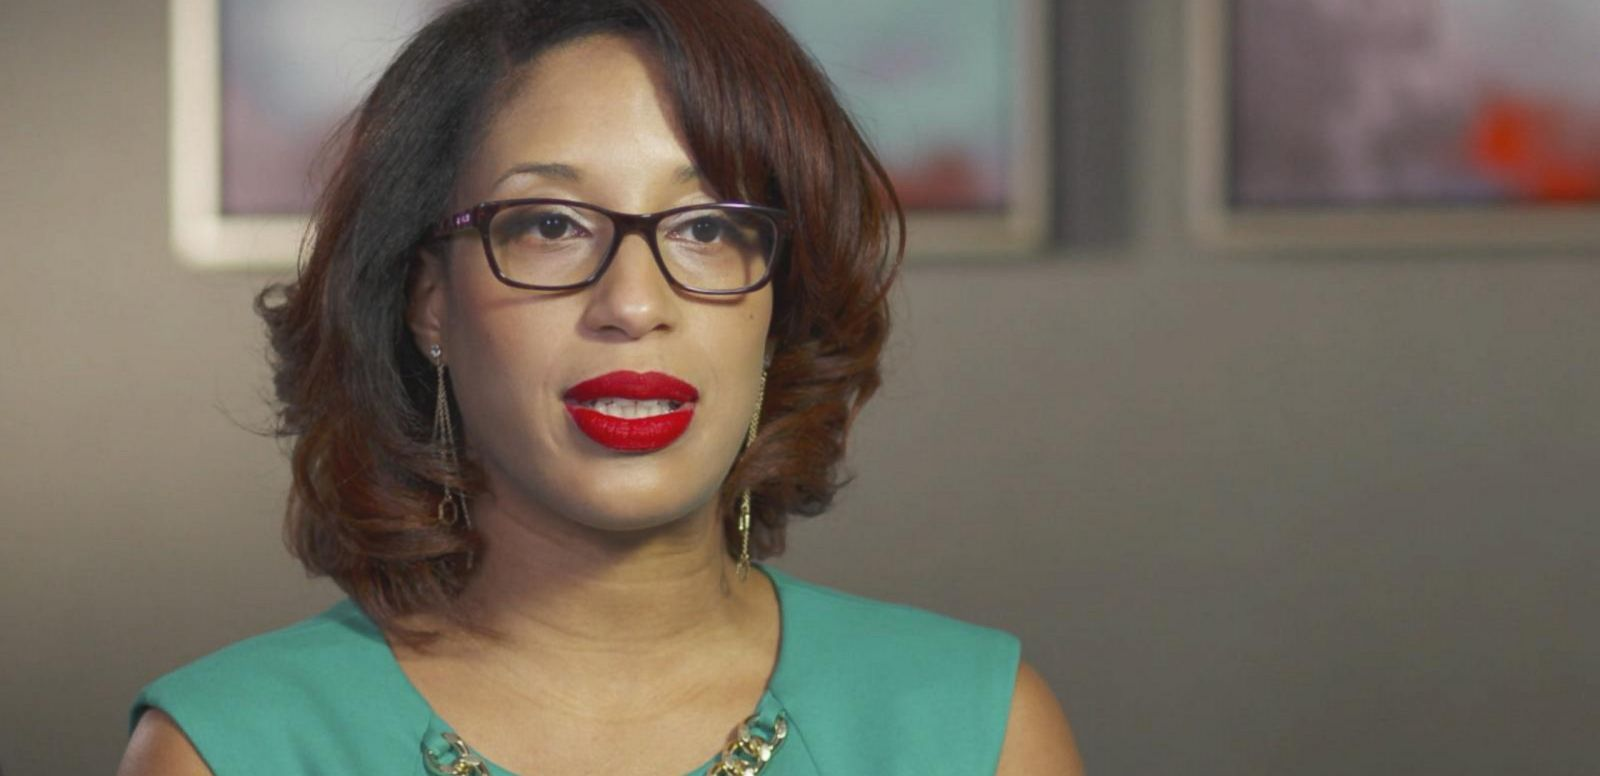 VIDEO: 'Serial' Trial Star Witness Asia McClain Speaks Out